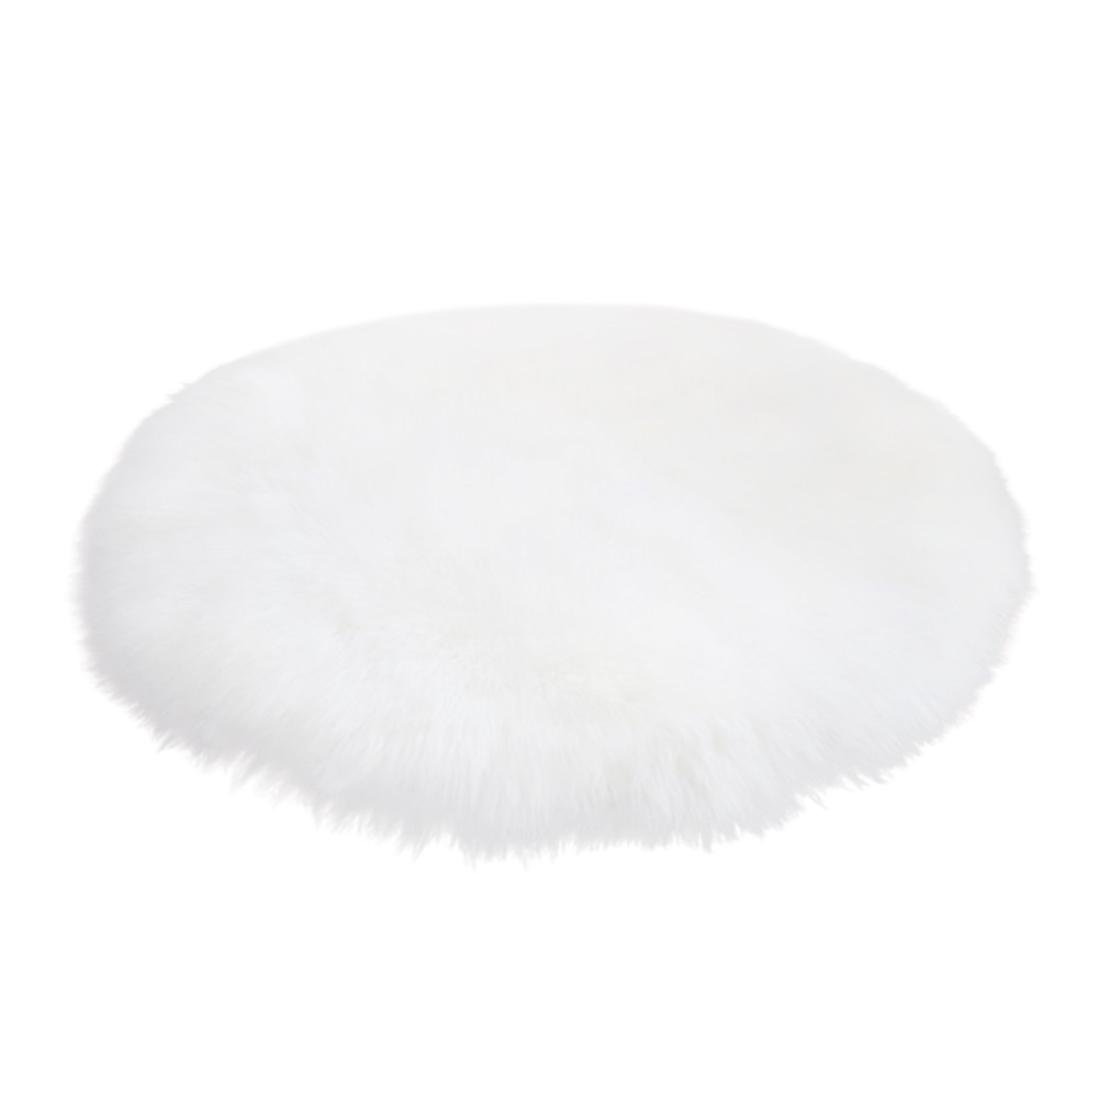 Faux Fur Rug, ADESHOP Anti-Skid Yoga Carpet Fluffy Rug For Living Room Sheepskin Style Rug, 30*30CM (White)